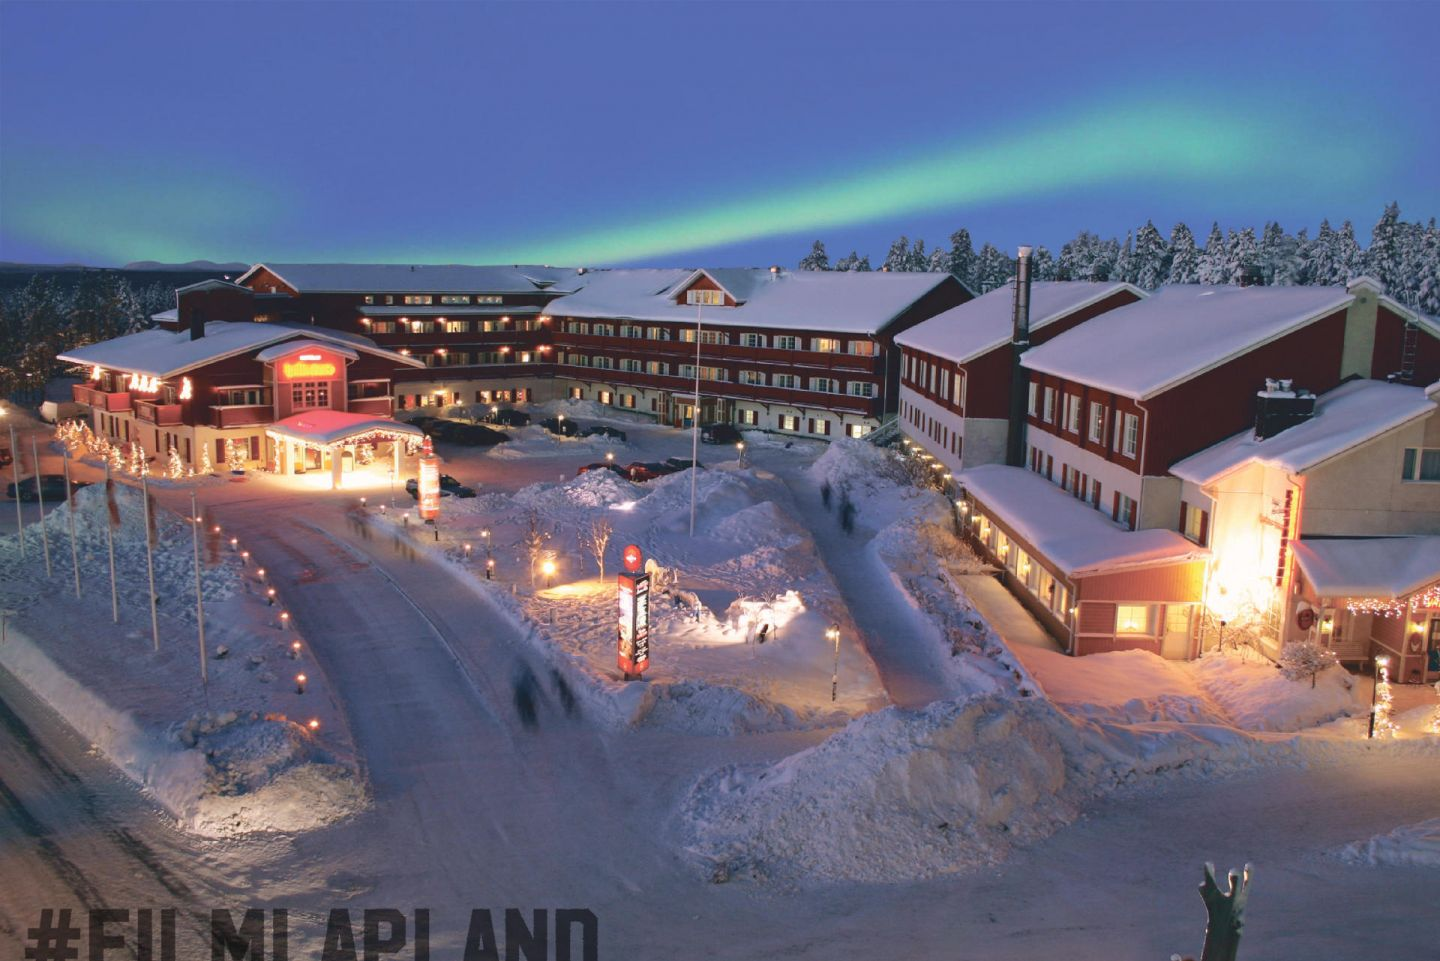 Northern Lights over Hullu Poro in Levi in Lapland